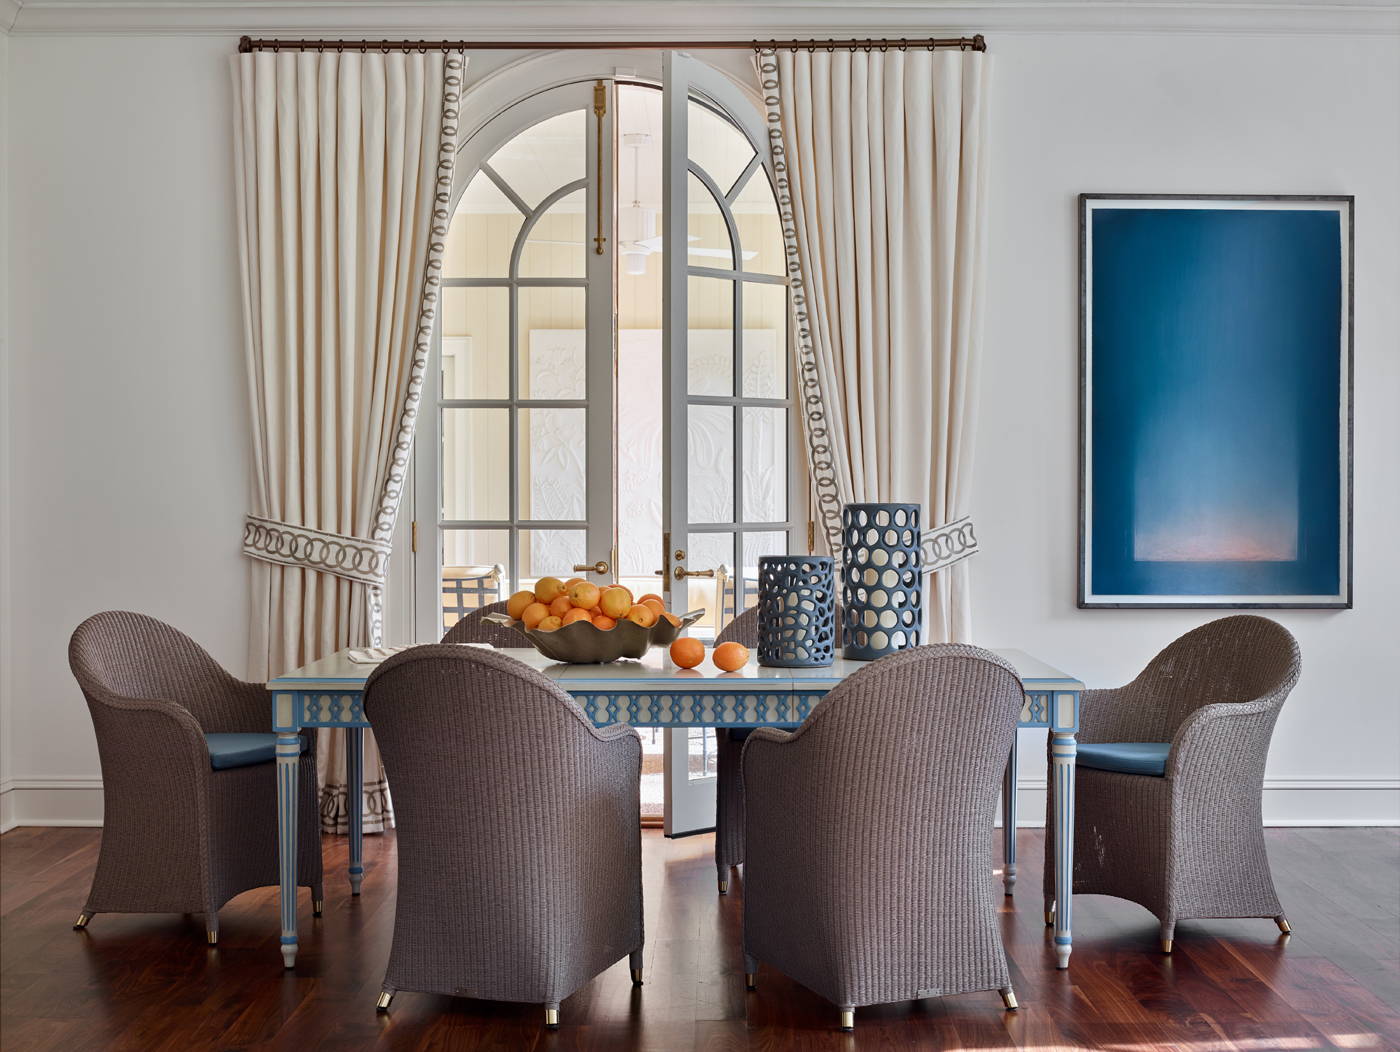 Breakfast area with Janus et Cie chairs, Palladian style French doors, linen curtains | Savage Interior Design